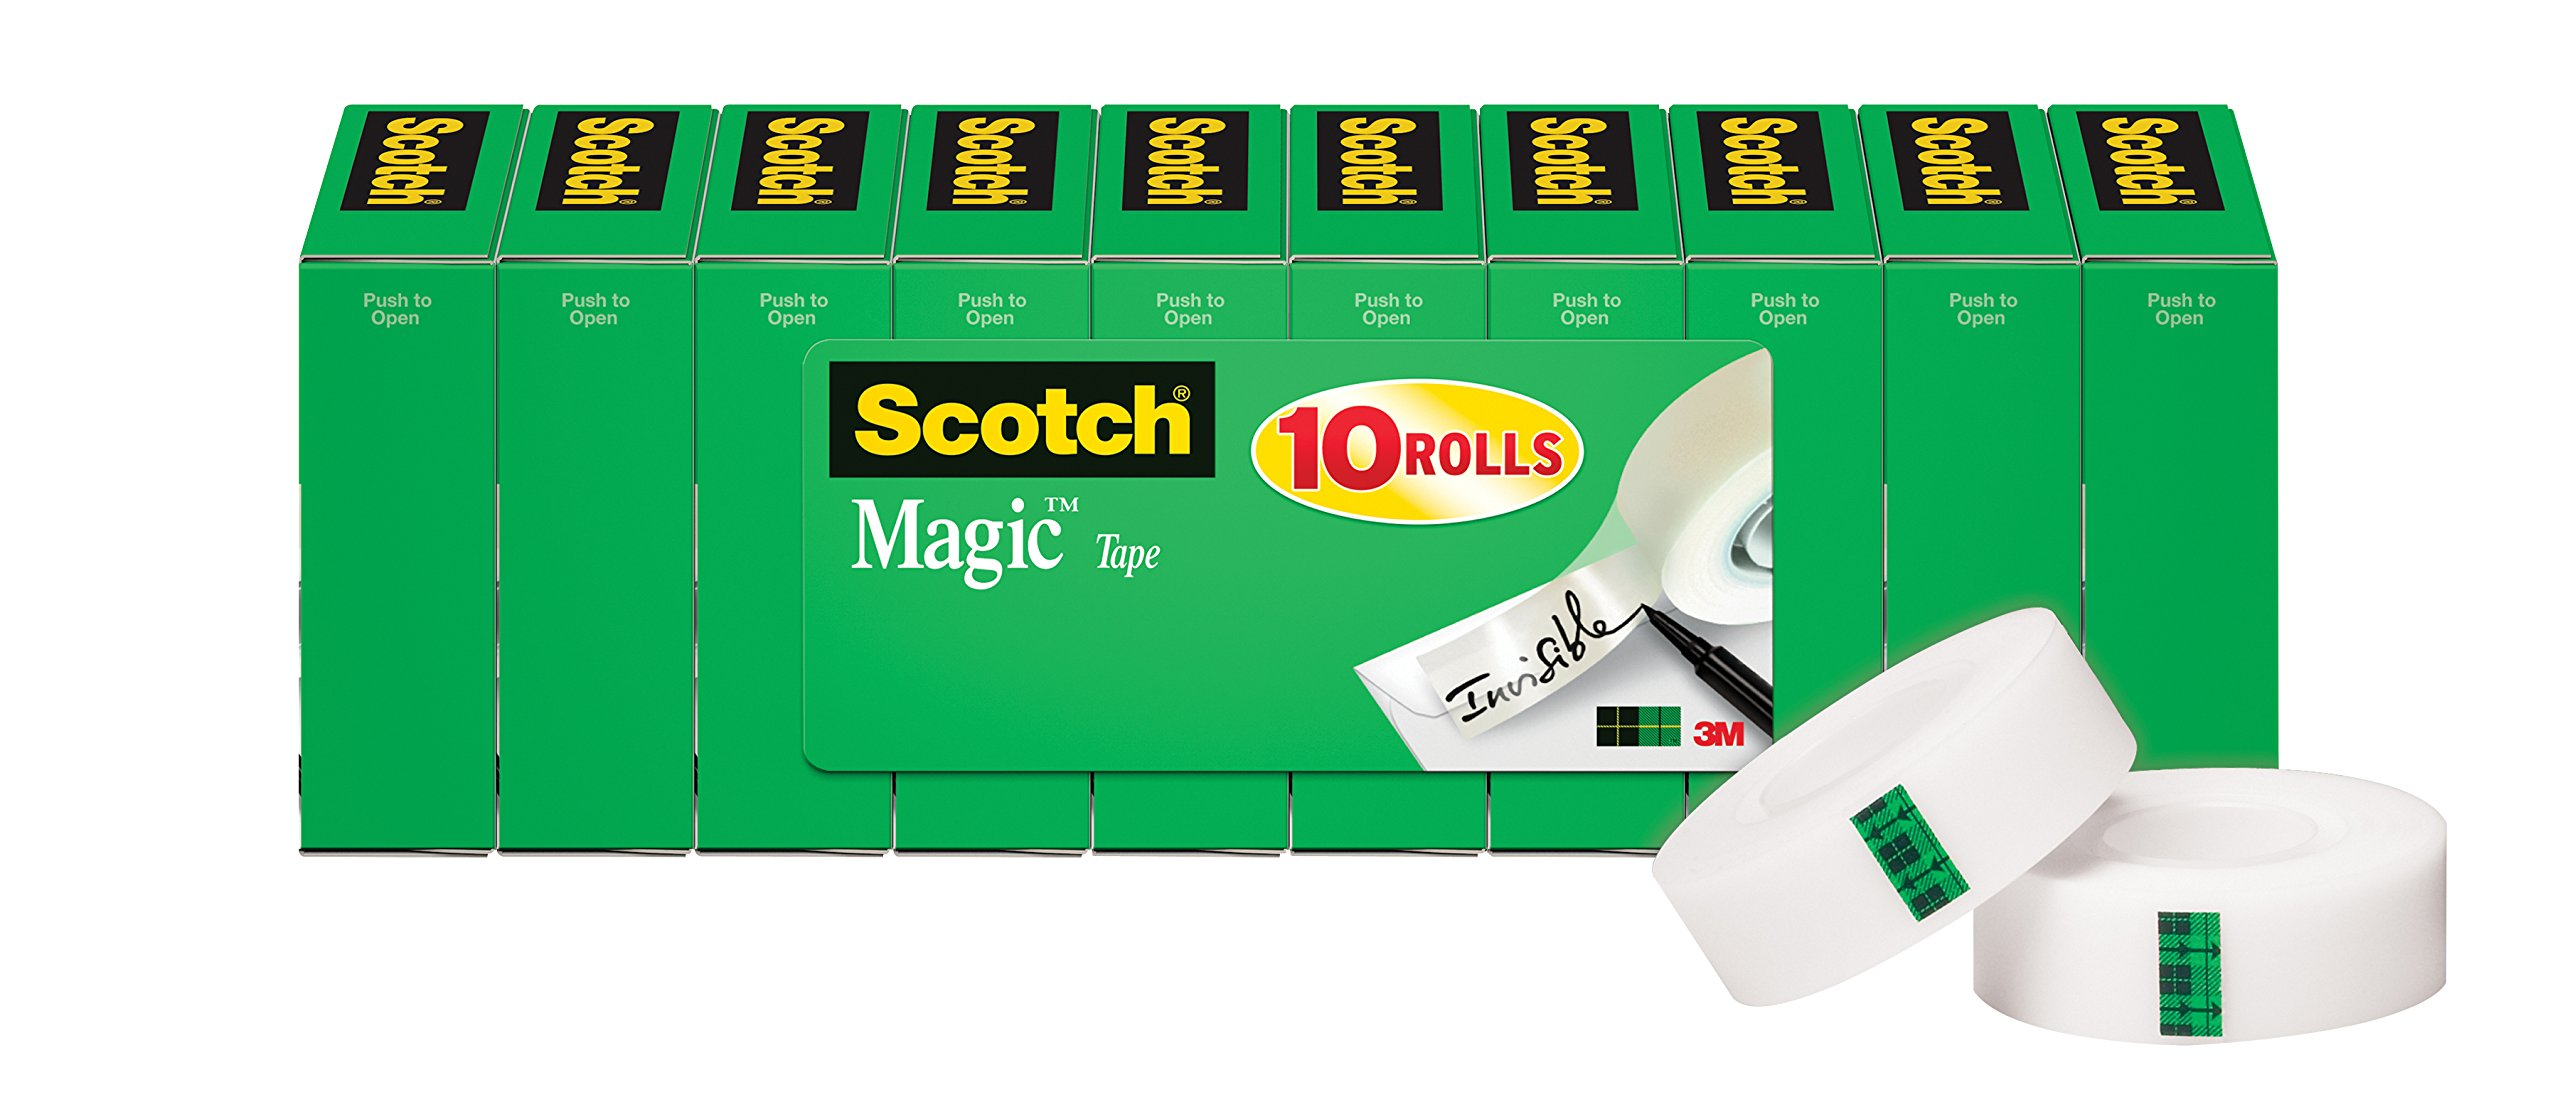 Scotch Magic Tape, Numerous Applications, Invisible, Engineered for Repairing, 3/4 x 1000 Inches, Boxed, 10 Rolls (810P10K) by Scotch Brand